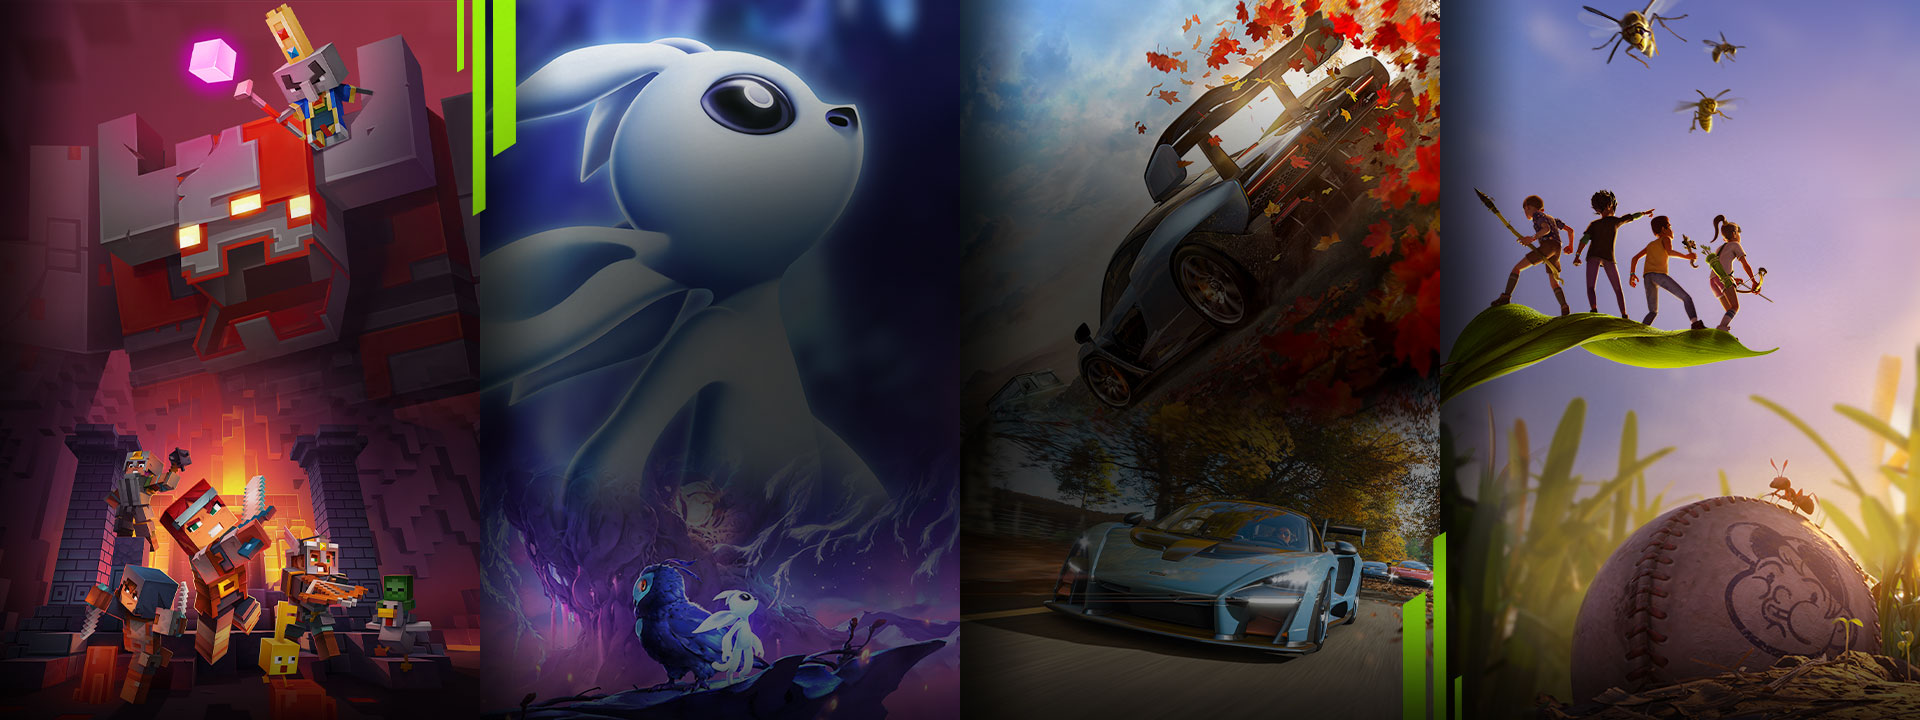 A selection of games available with Xbox Game Pass including Minecraft: Dungeons, Ori and the Will of the Wisps, Forza Horizon 4 and Grounded.